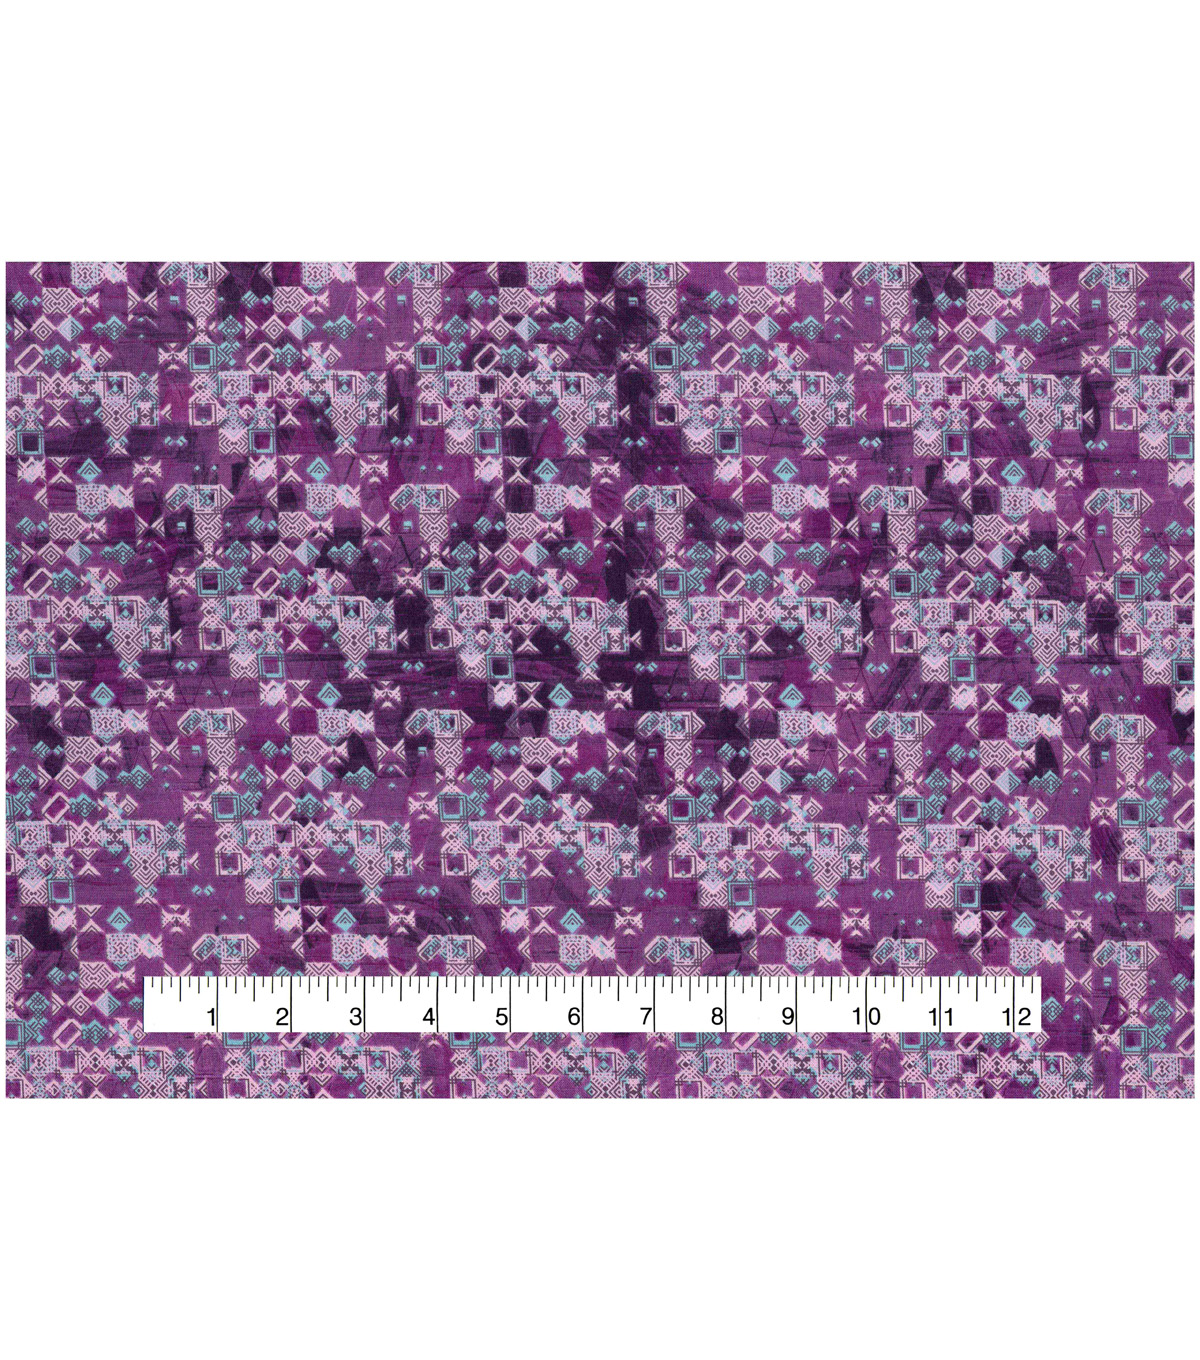 Modern Cotton Fabric -Mini Packed Shapes on Purple